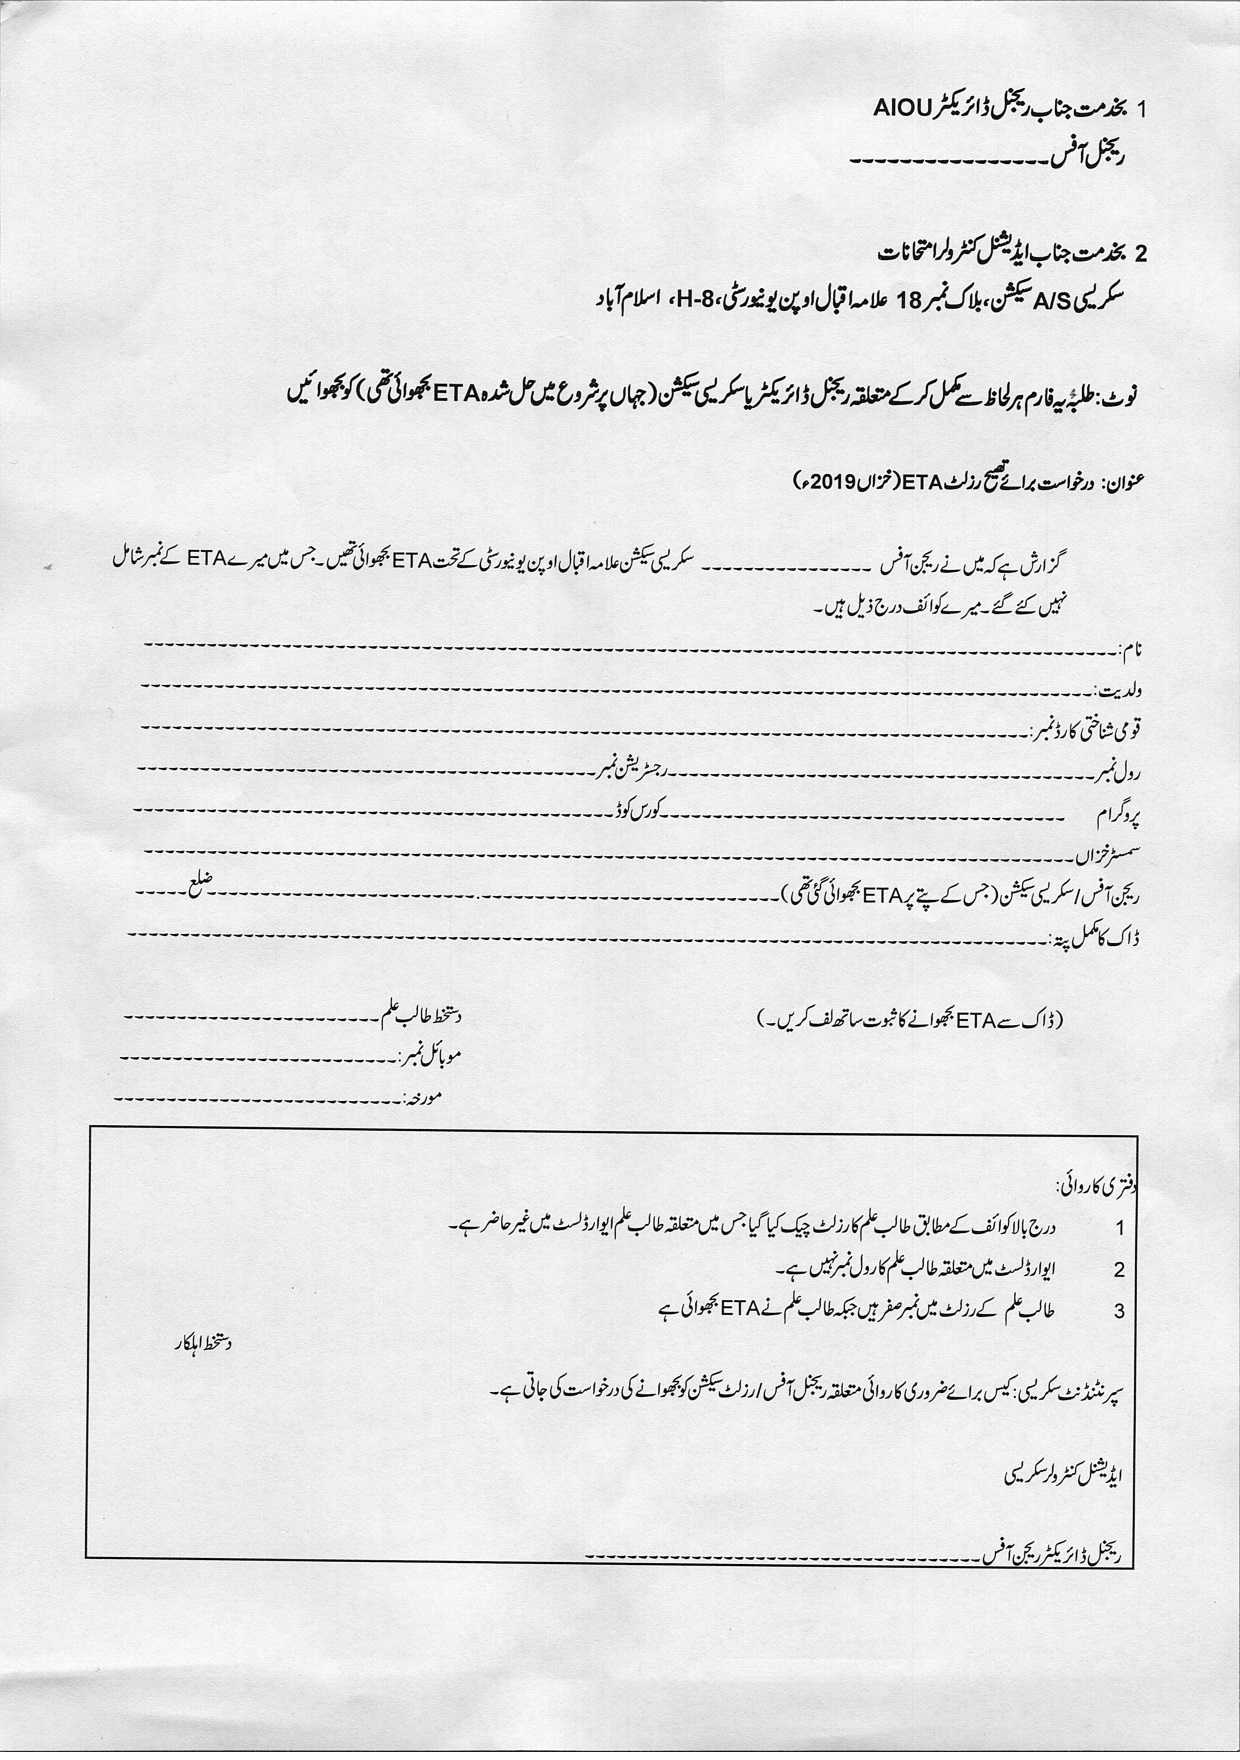 application form aiou Download Forms